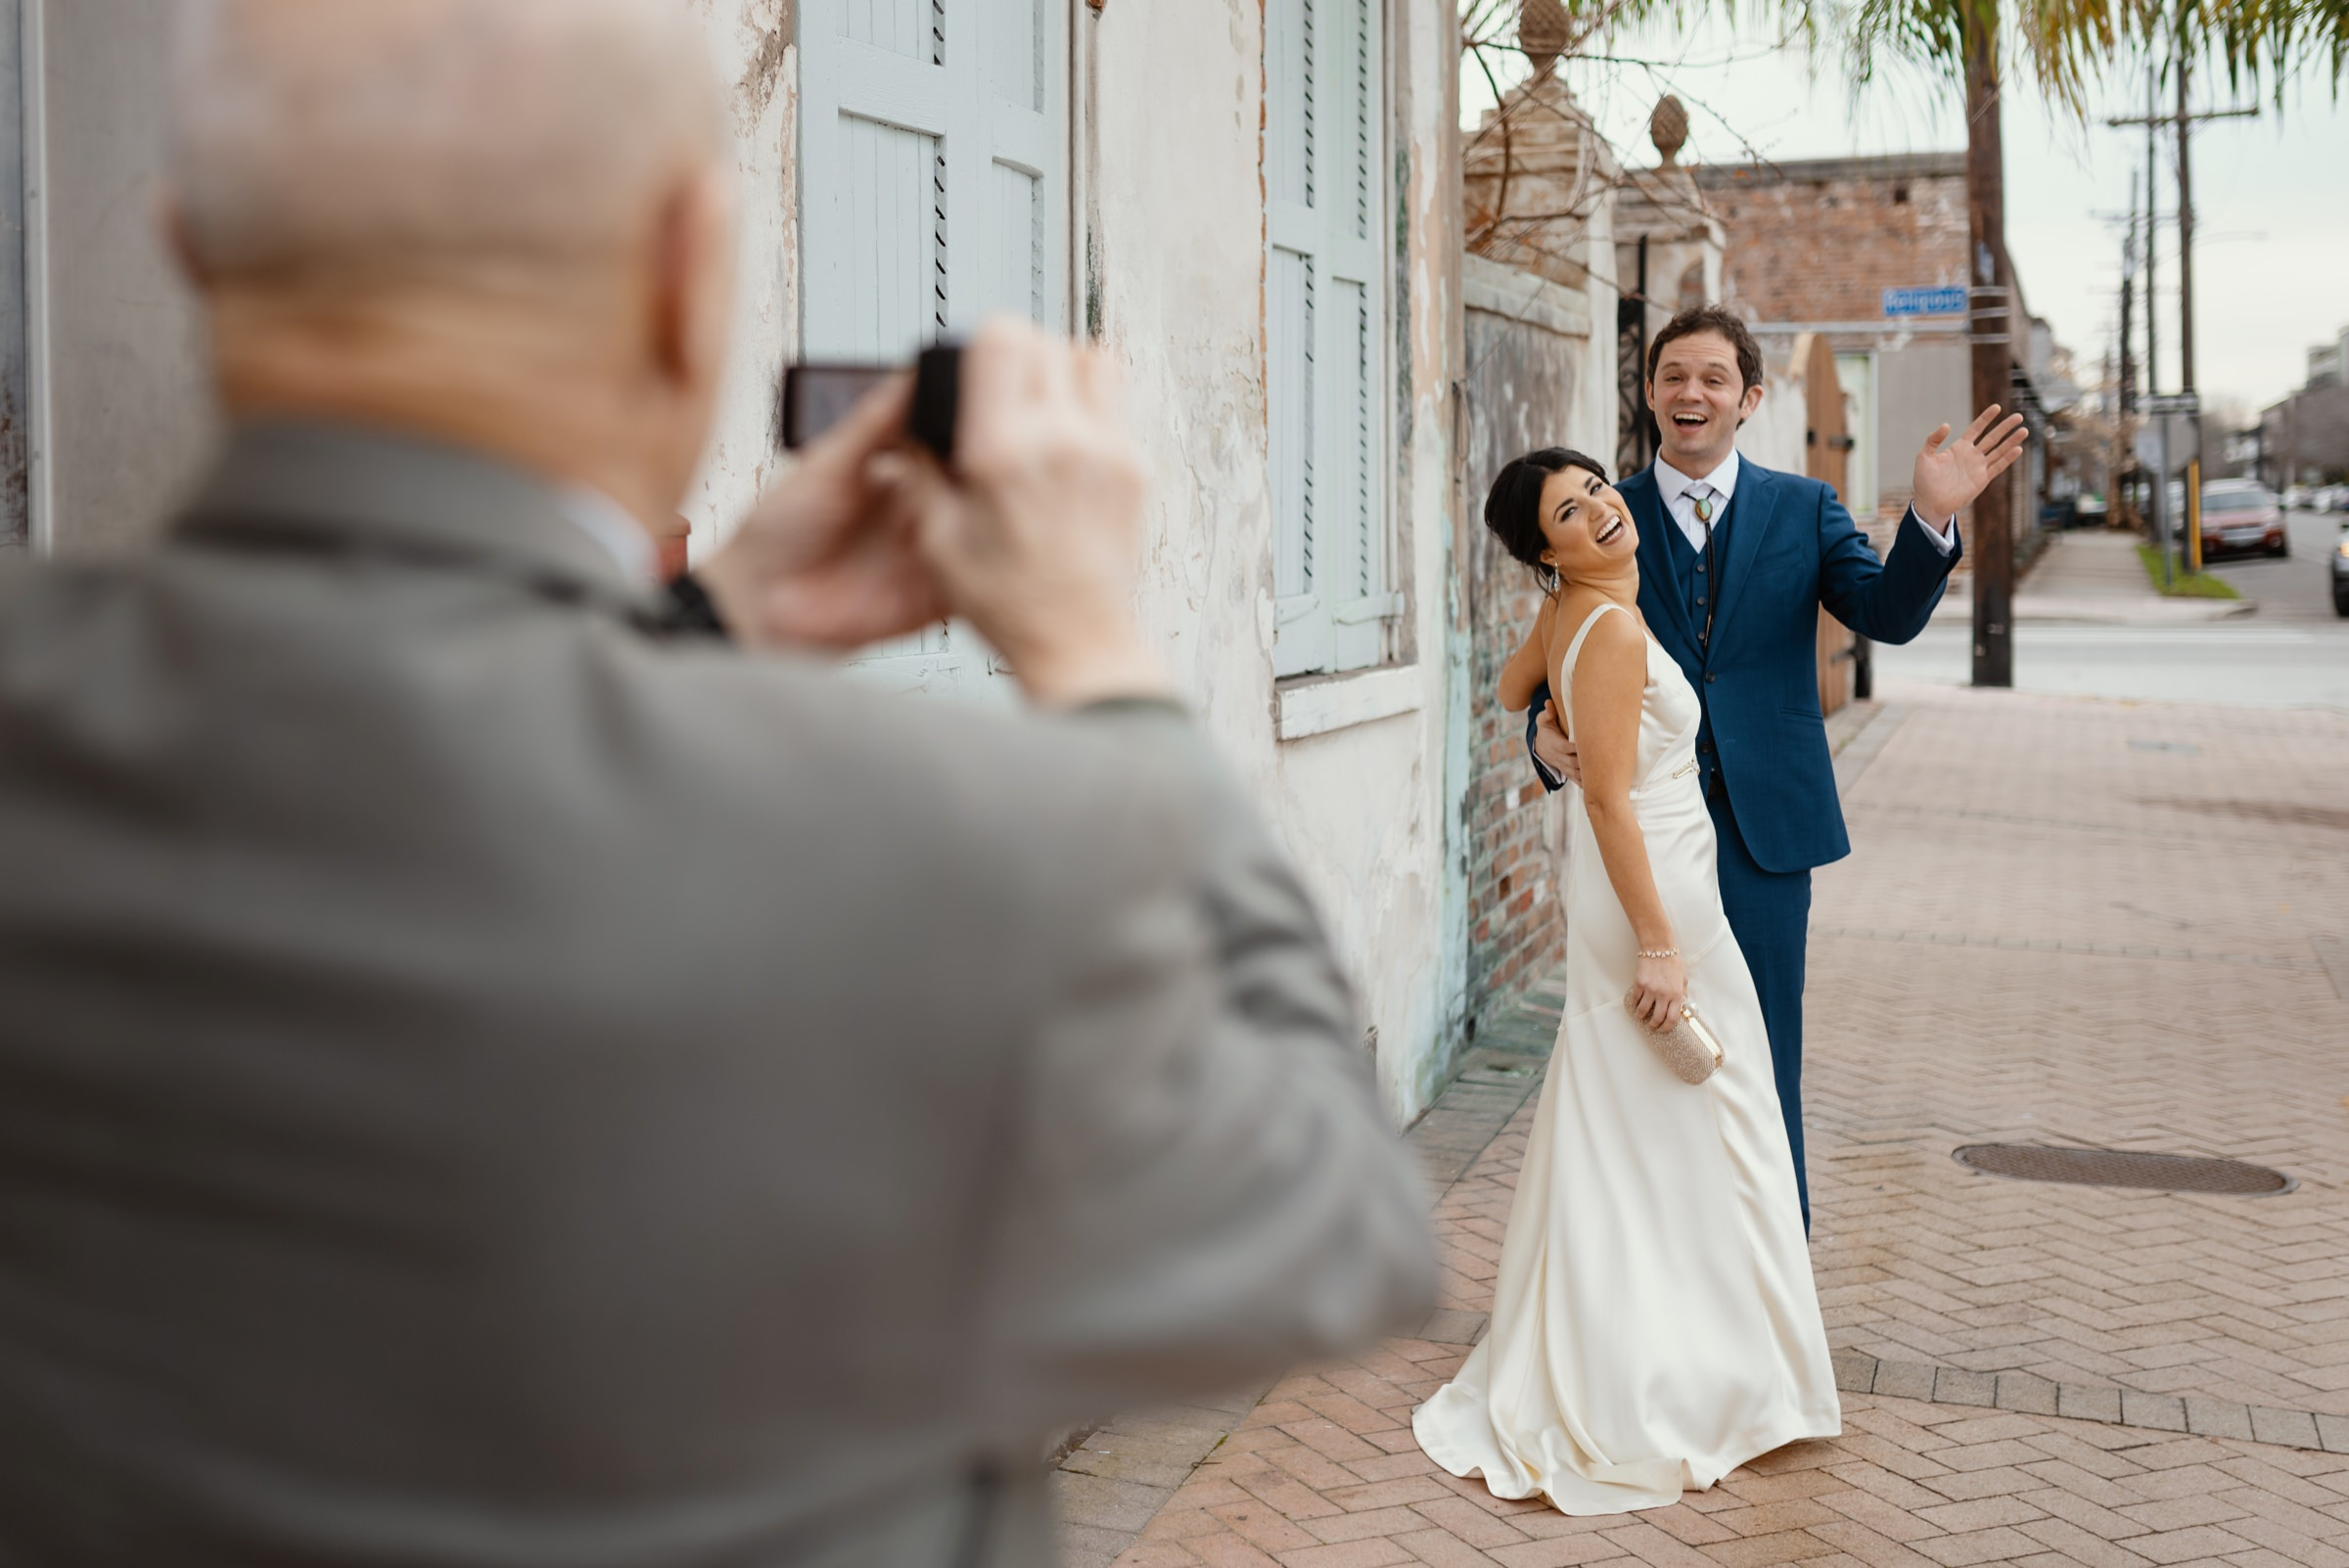 bride-and-groom-having-photo-taken-of-them-by-guest-new-orleans-austin-houston-photo-by-dark-roux